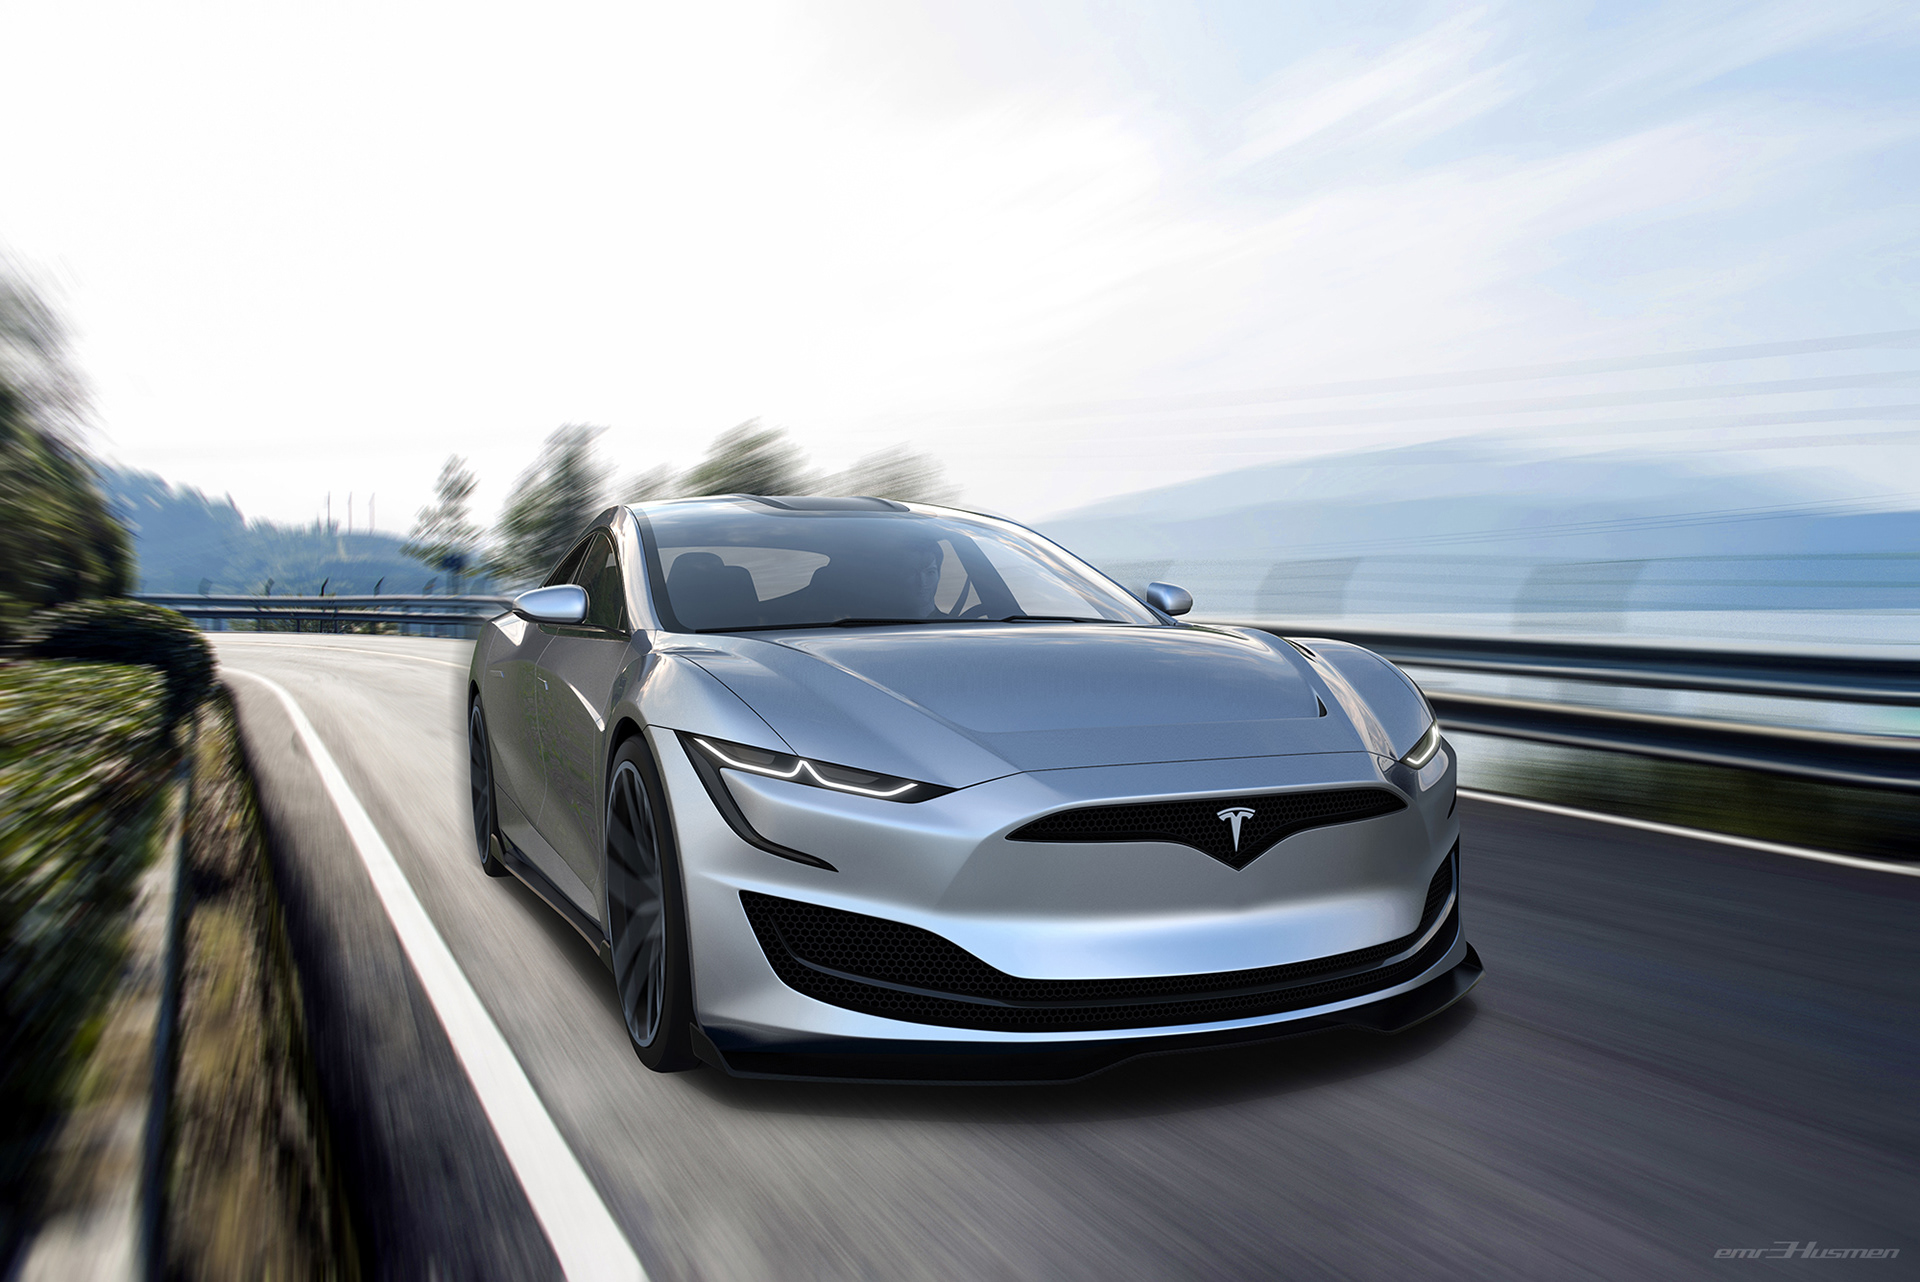 Stunning Tesla Model S Concept Render Imagines Roadster Inspired Redesign